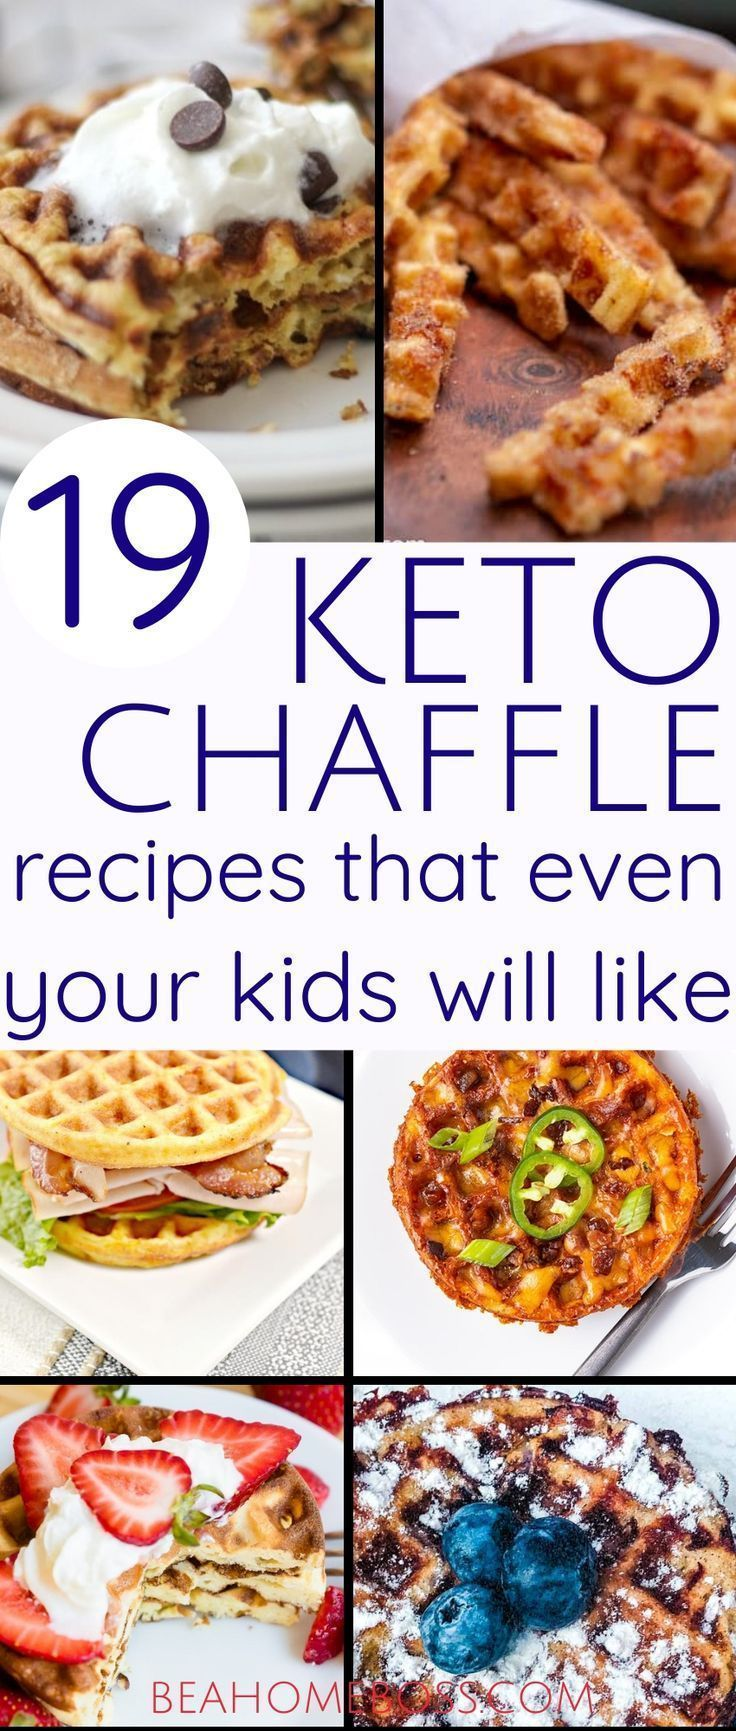 Keto chaffles! If you haven't tried